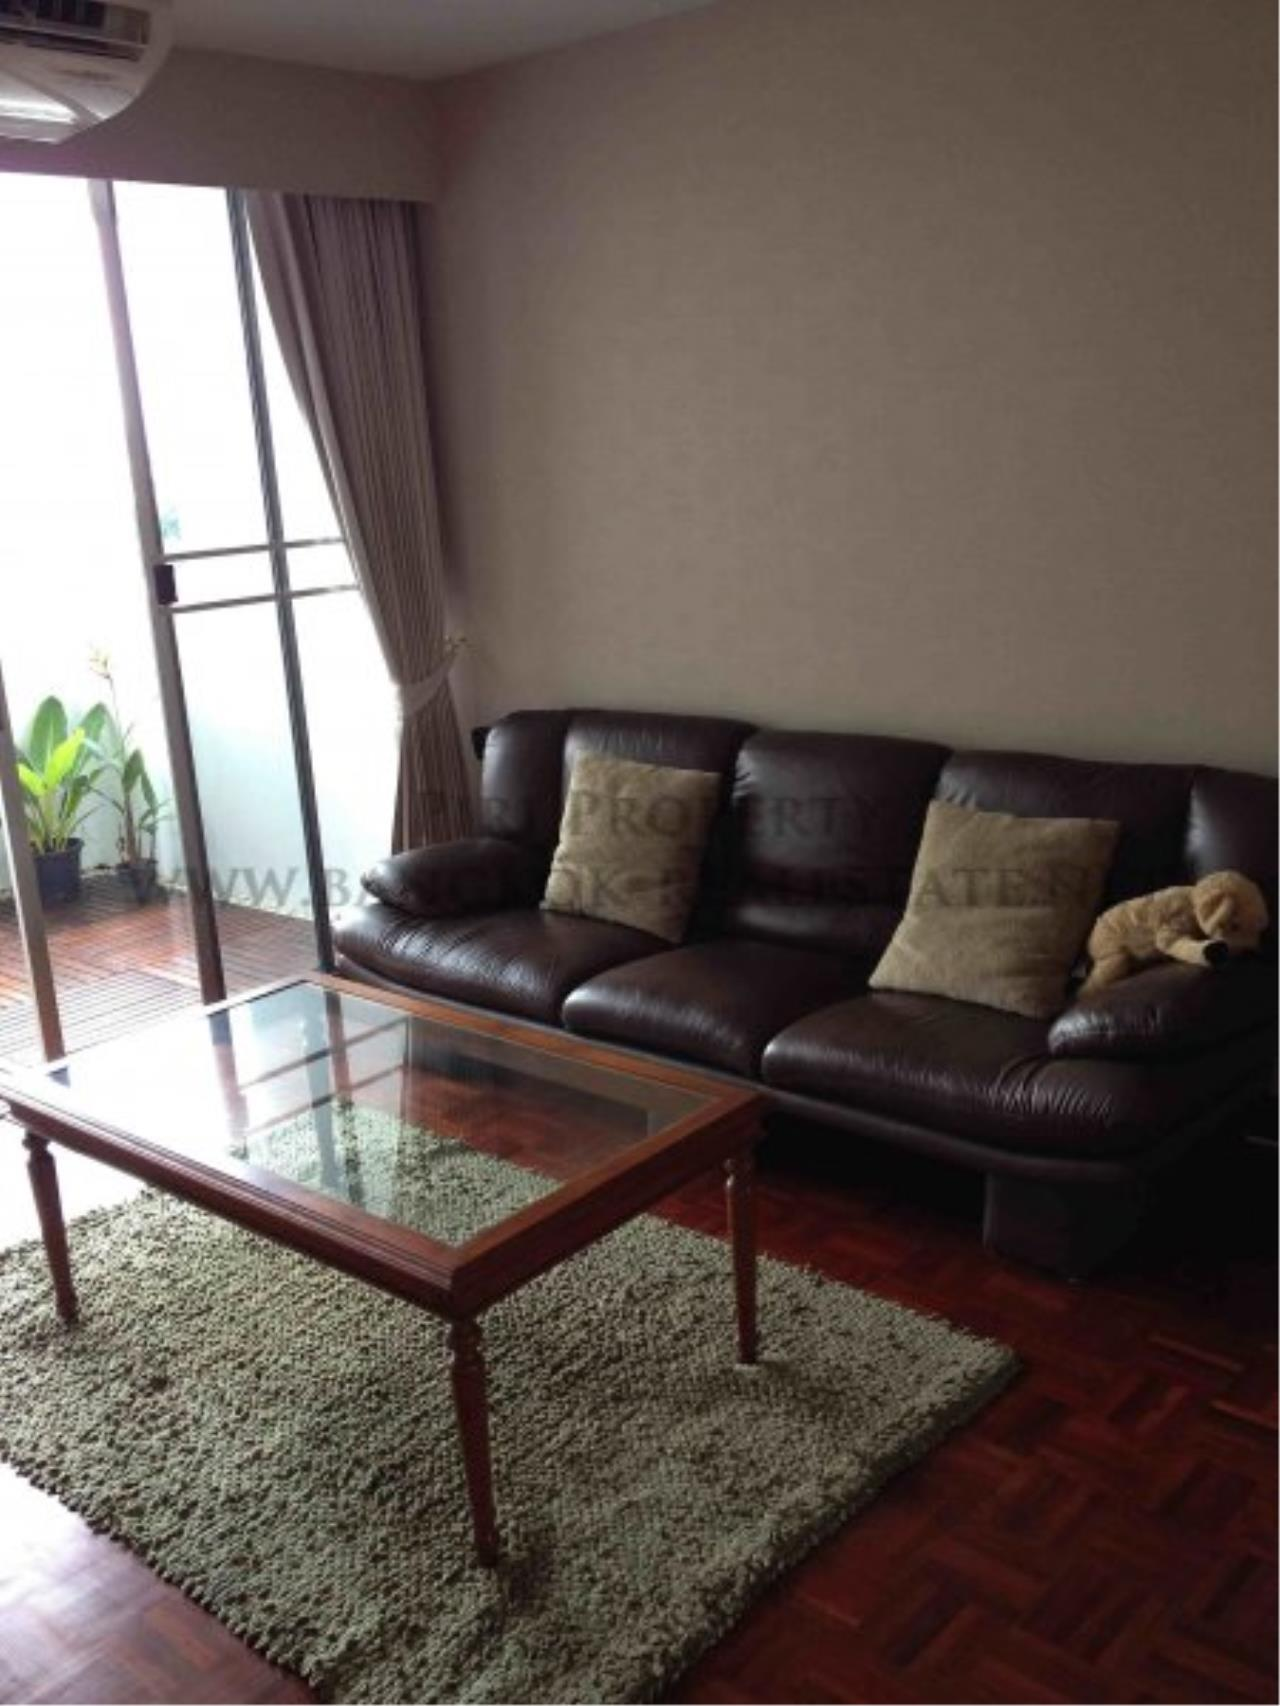 Piri Property Agency's DS Tower 2 - Renovated and Condo for Sale - 3BR 6